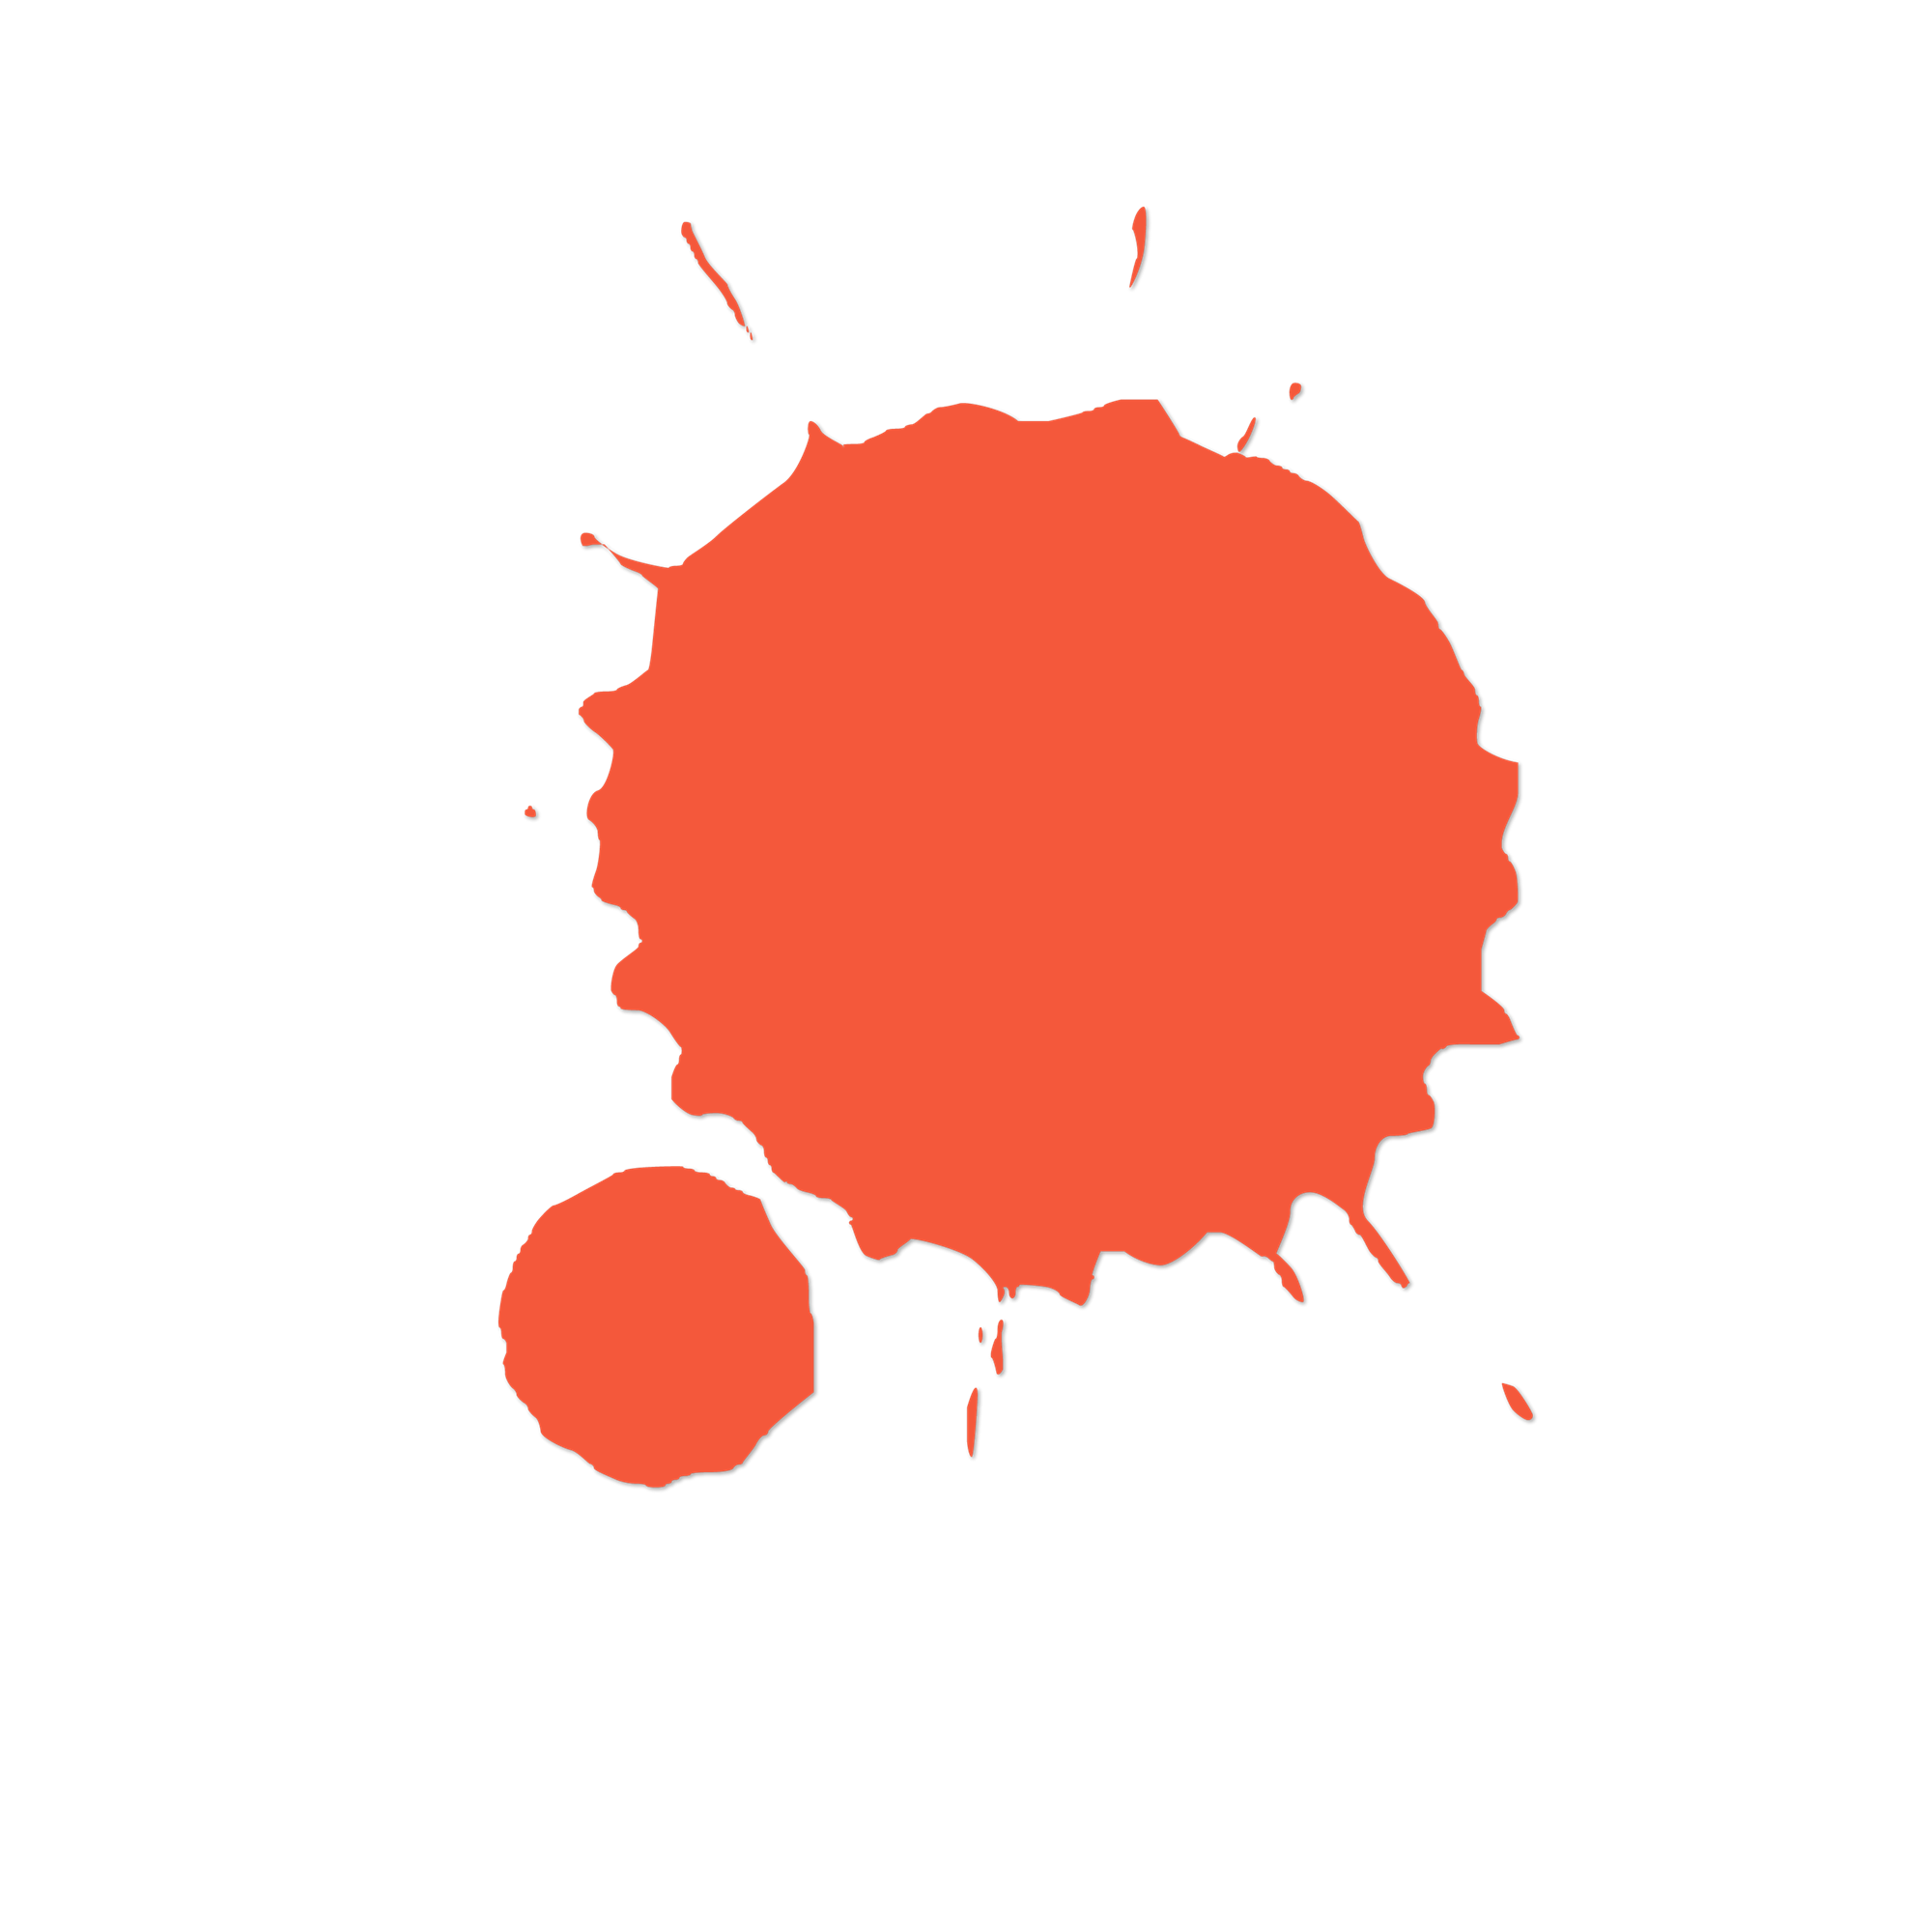 Icons - Paint Splatter 2 - Orange Red-01.png